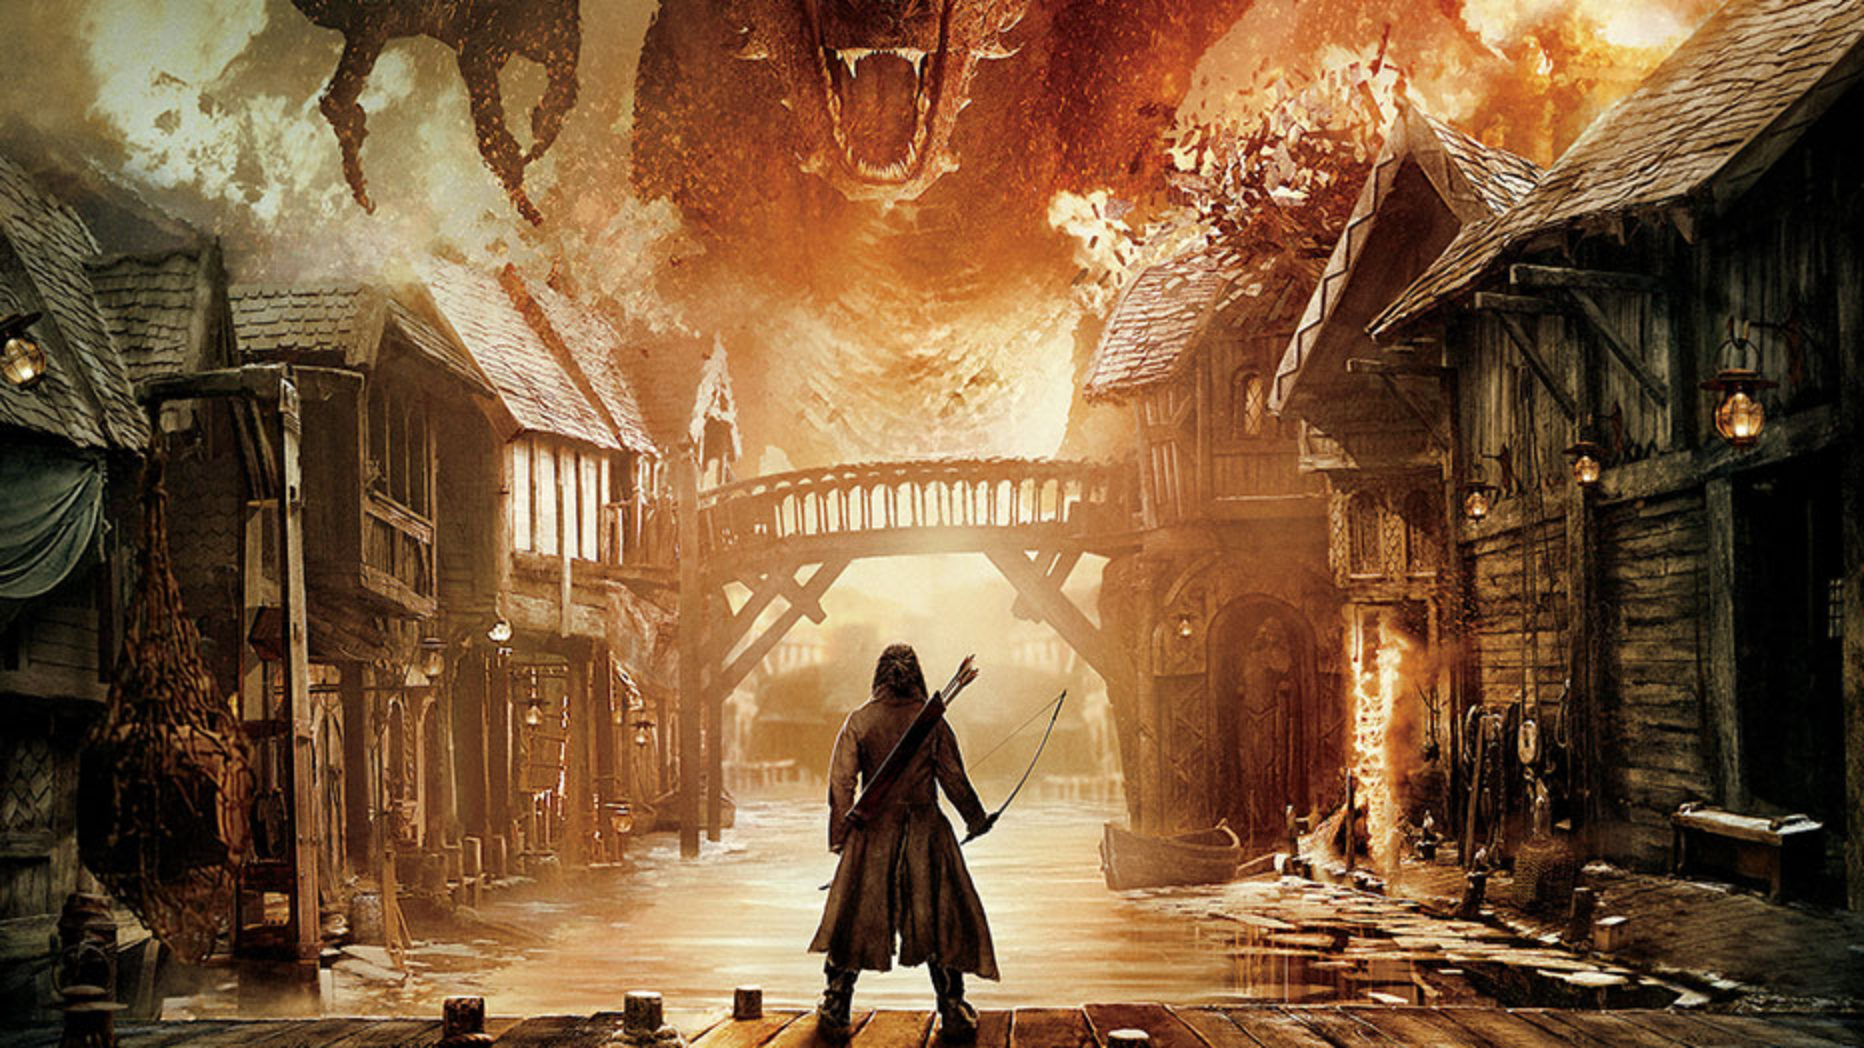 The Hobbit: Battle of the Five Armies DVD Review | Rent of Buy?